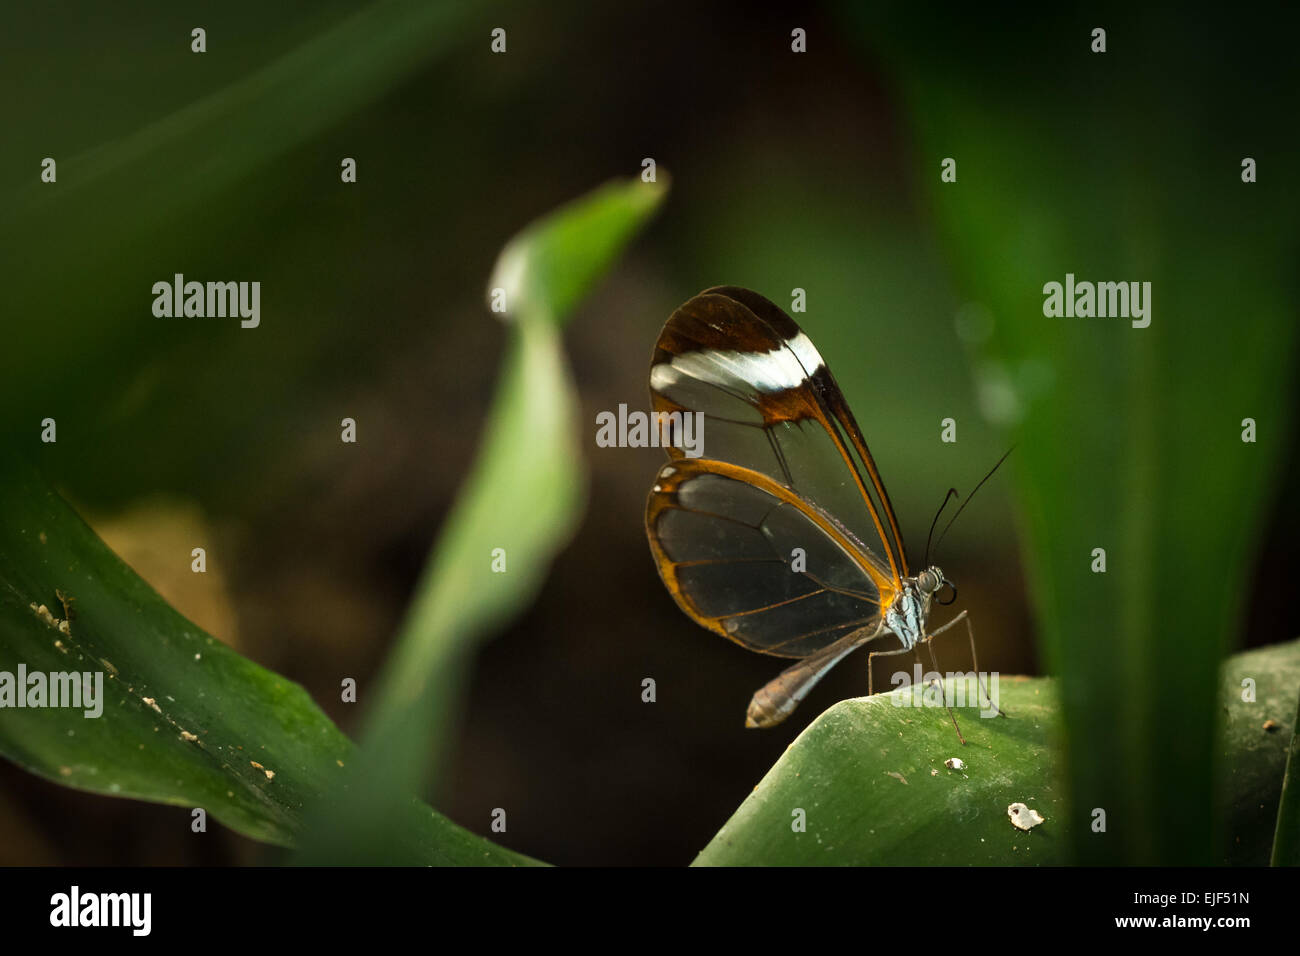 A brush-footed, Glasswinged butterfly hidden deep down the vegetation. Only a speck of light falls onto the butterfly - Stock Image